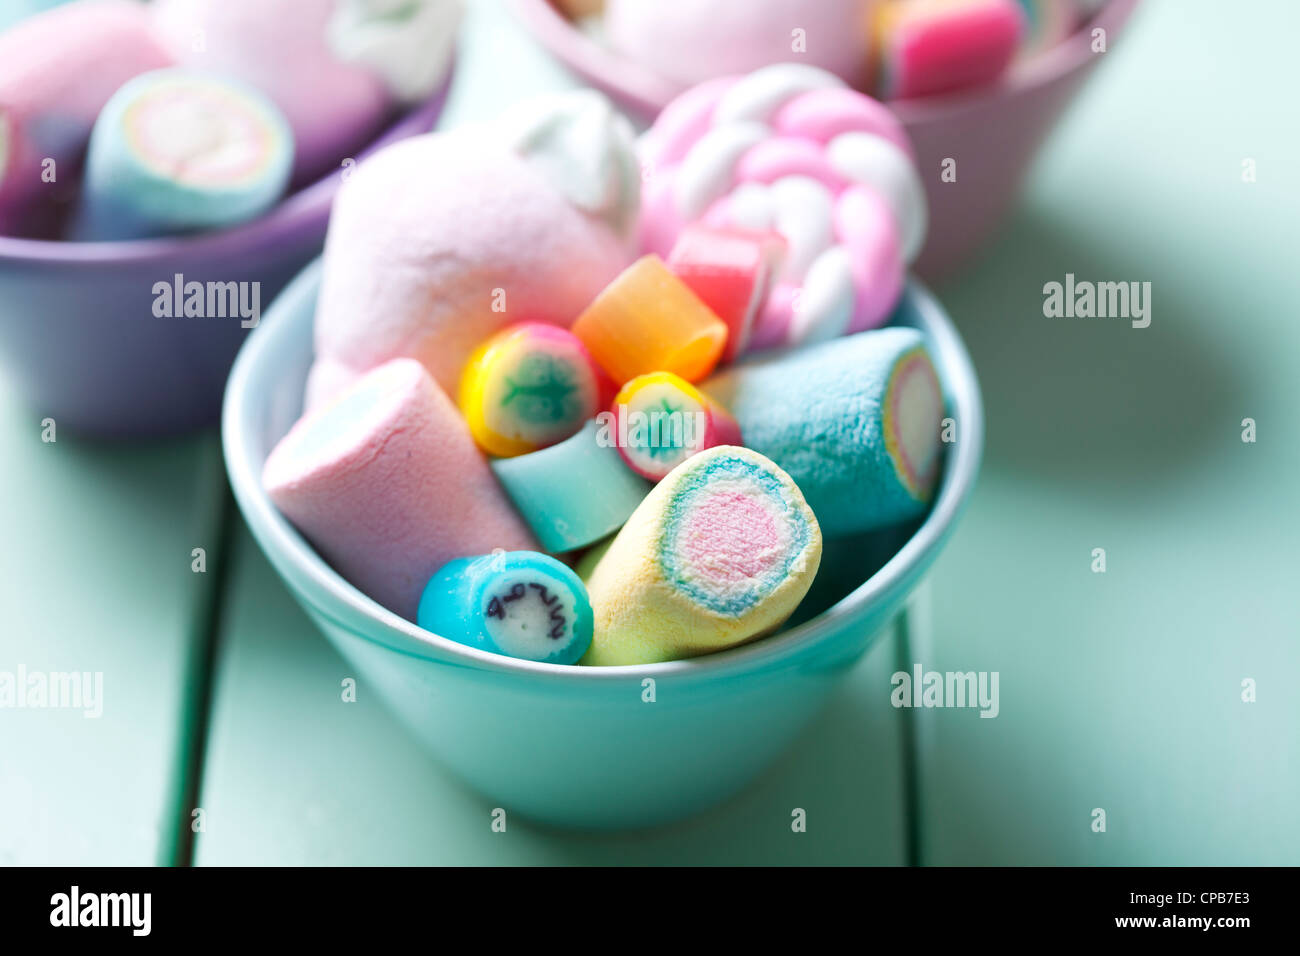 bowl full of colorful pastel marshmellows and rock candy - Stock Image